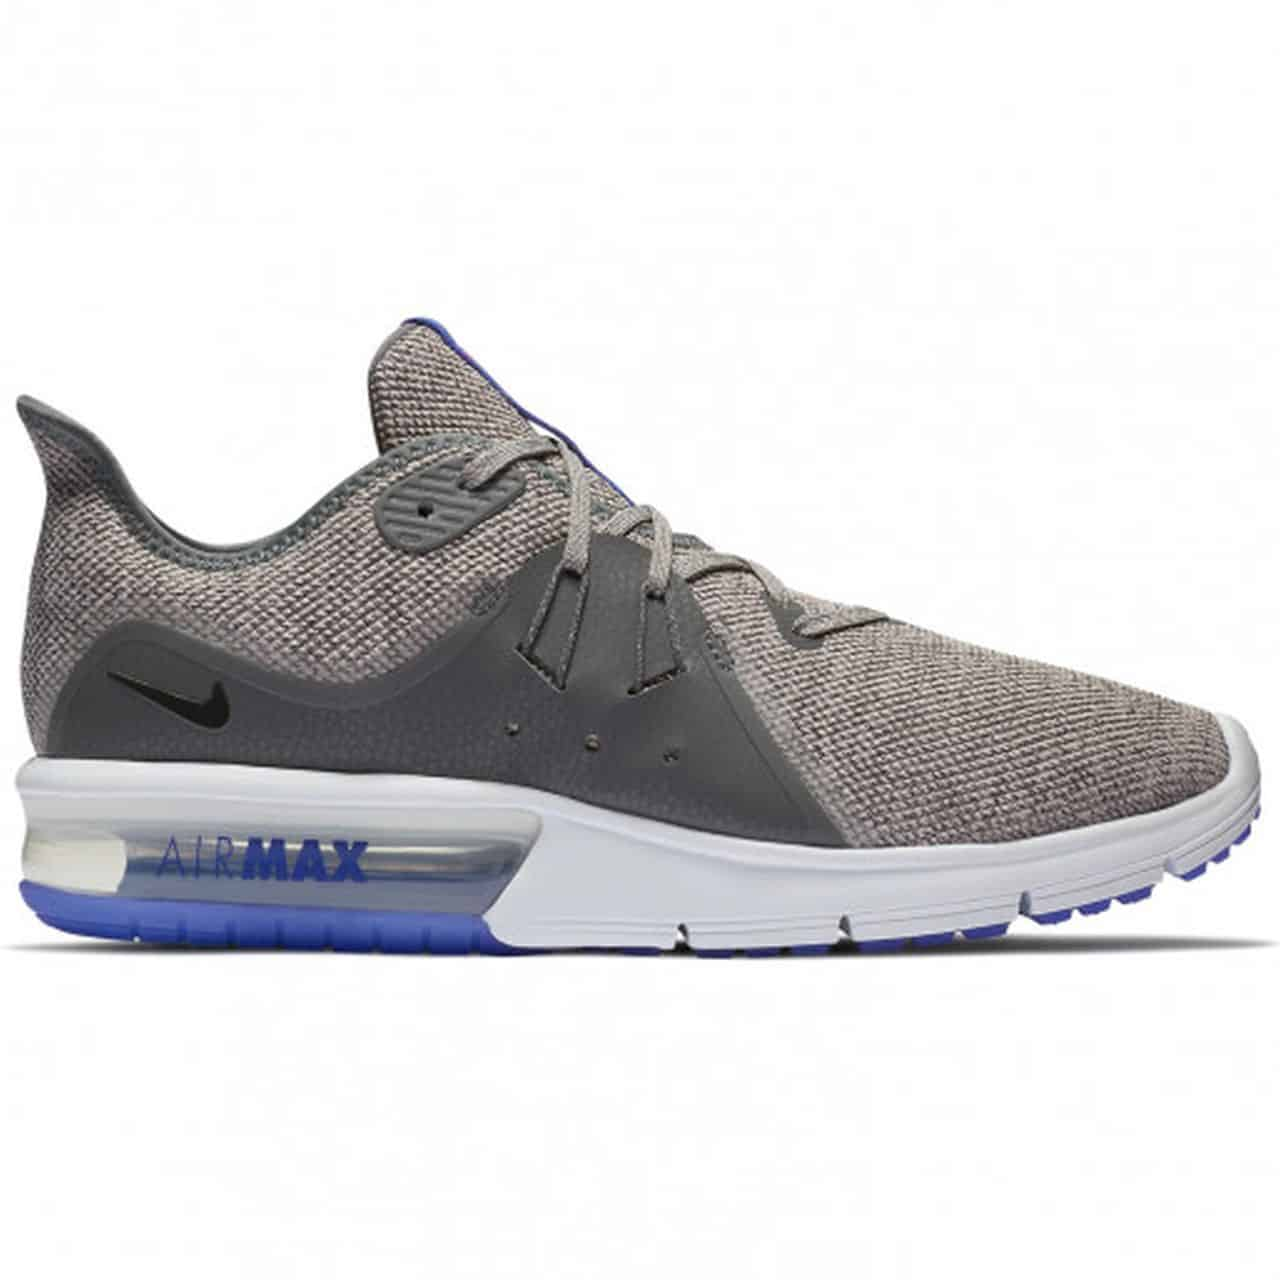 d50969e2fb5b ... switzerland adidasi originali nike air max sequent 3 921694 013 dc2fa  67946